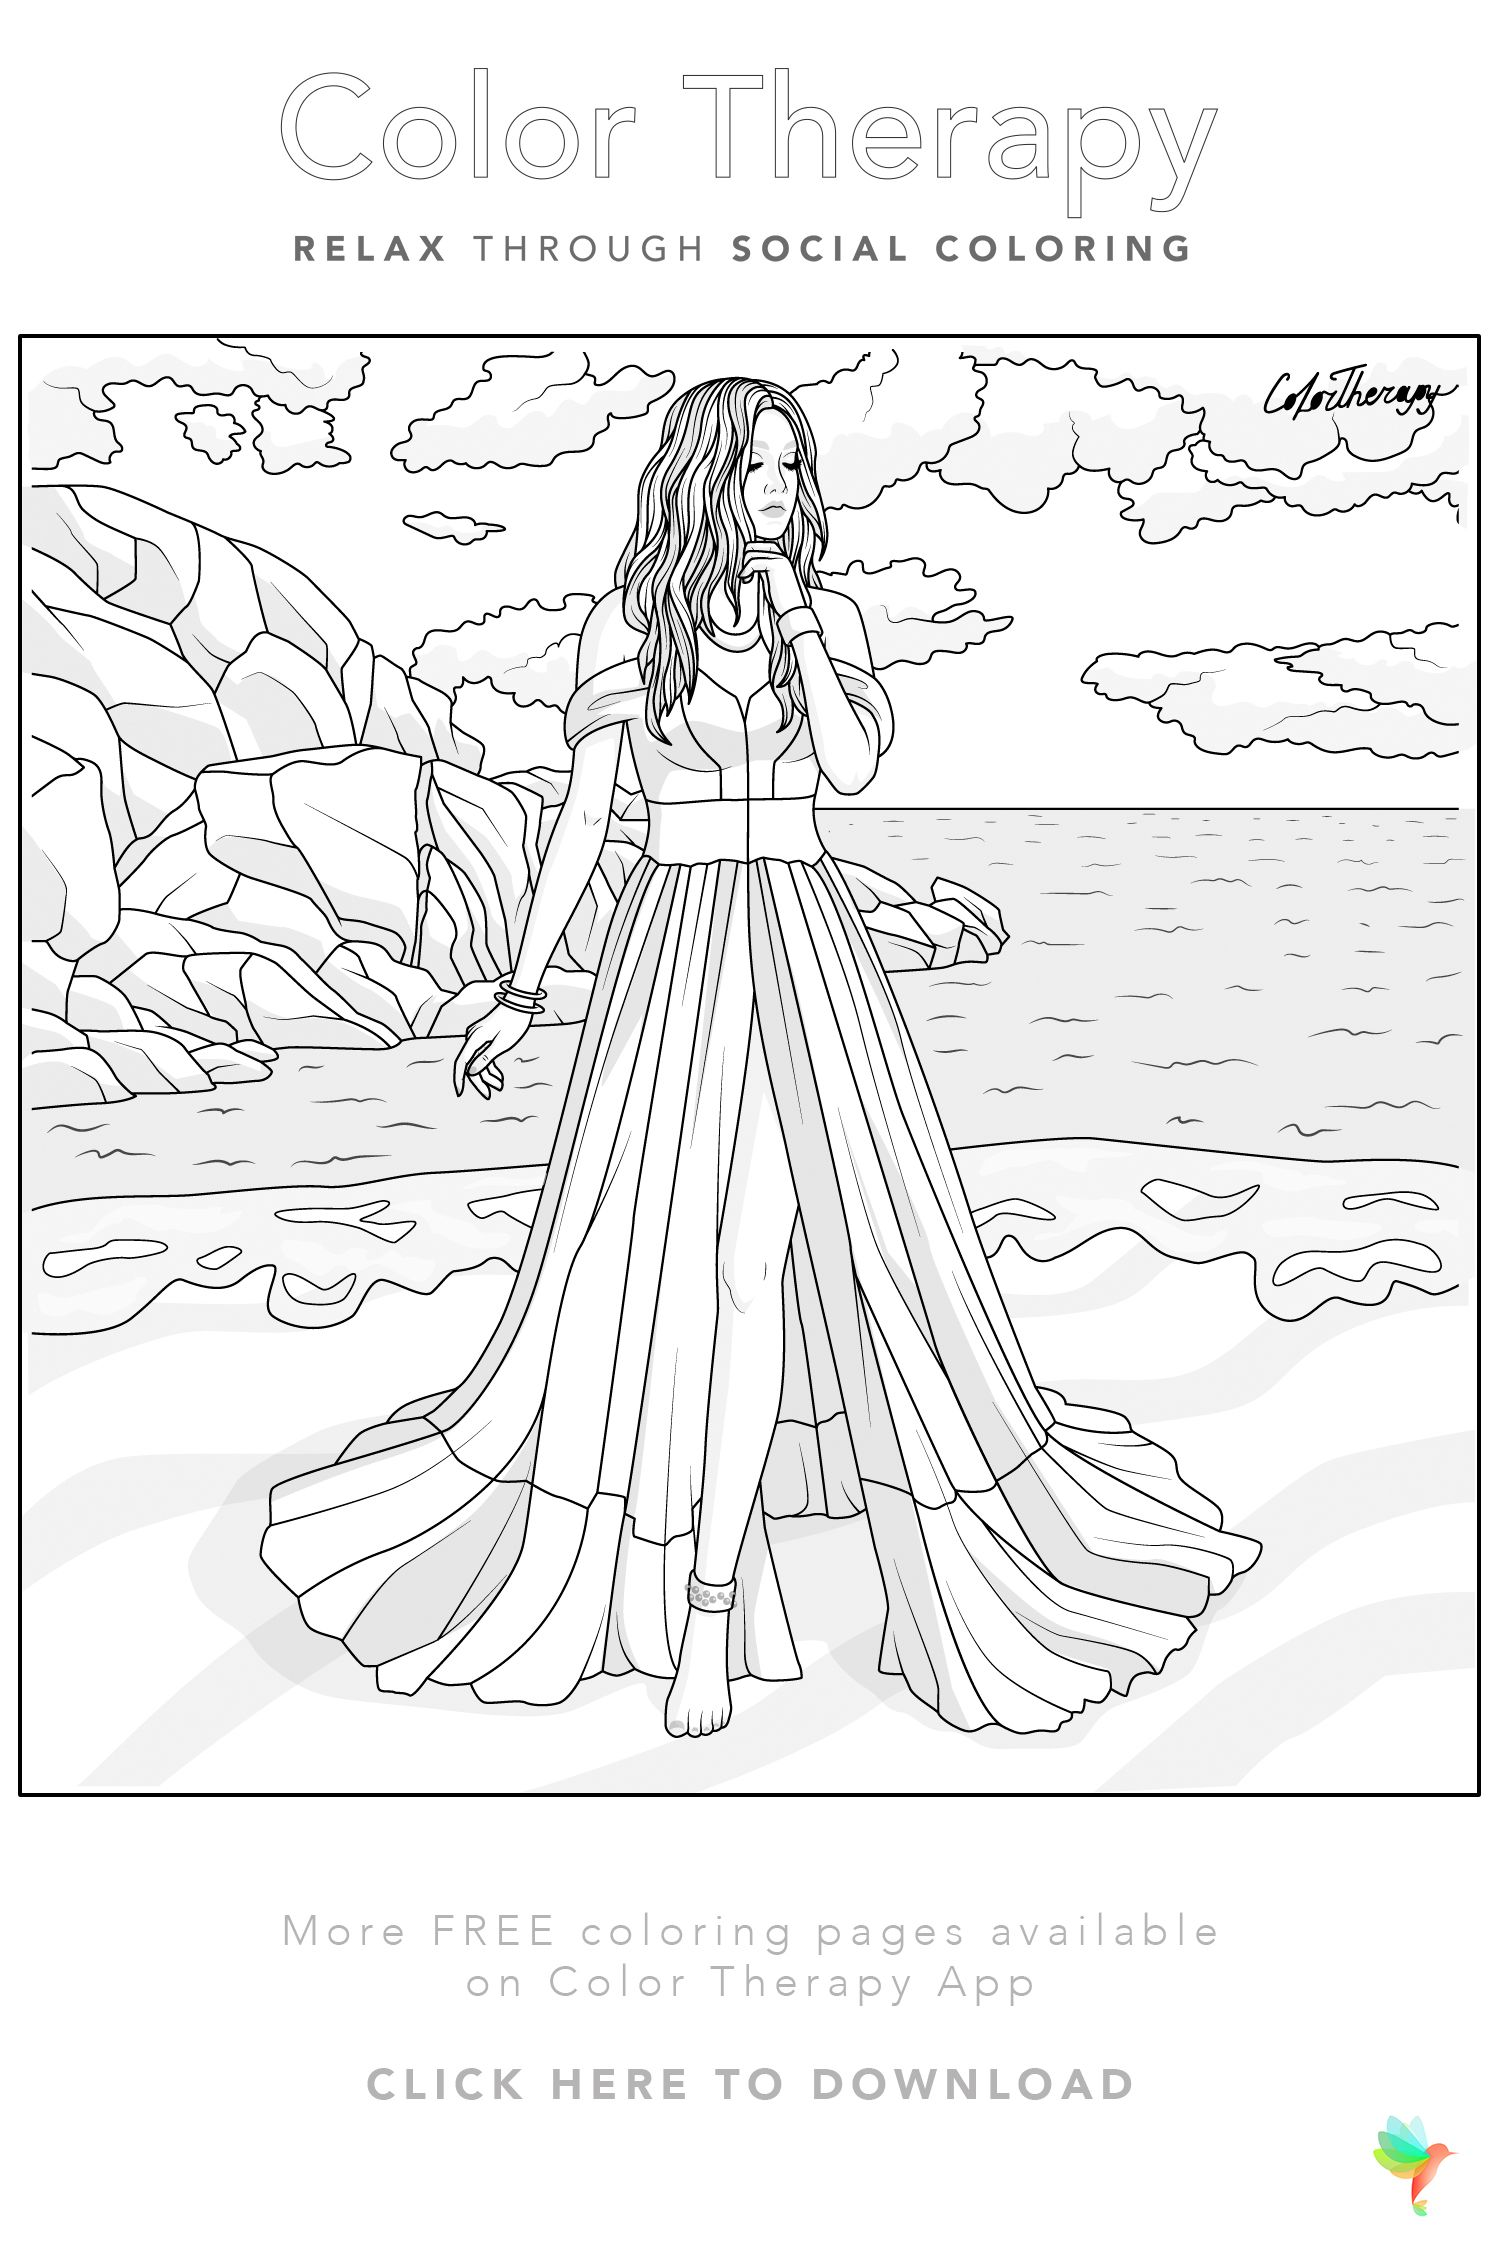 Color Therapy Gift Of The Day Free Coloring Template Detailed Coloring Pages Horse Coloring Pages Fashion Coloring Book